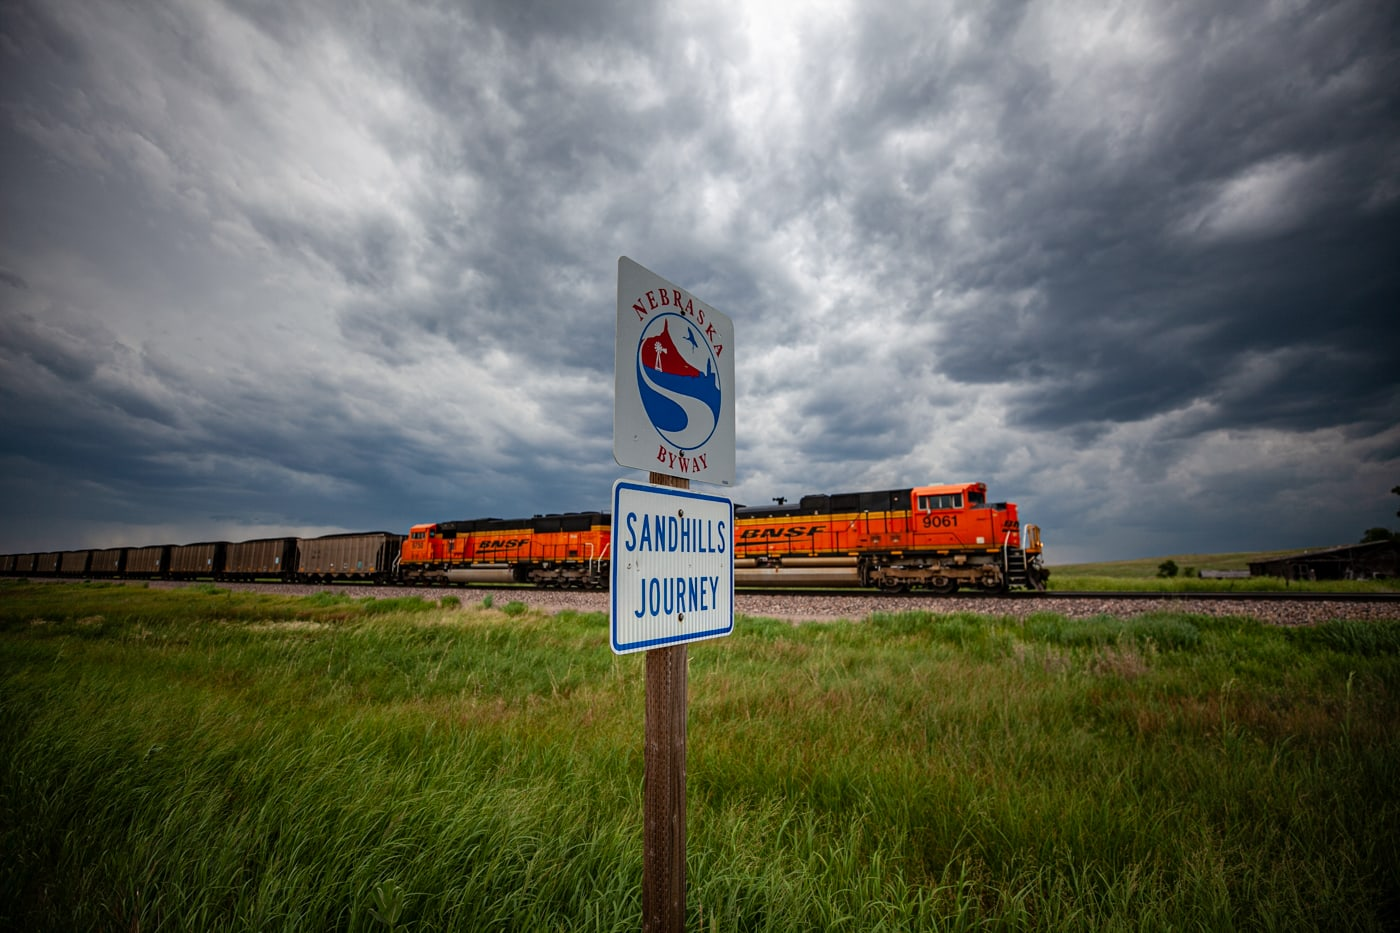 Nebraska Sandhills Journey Scenic Byway Road Sign with a train in the background